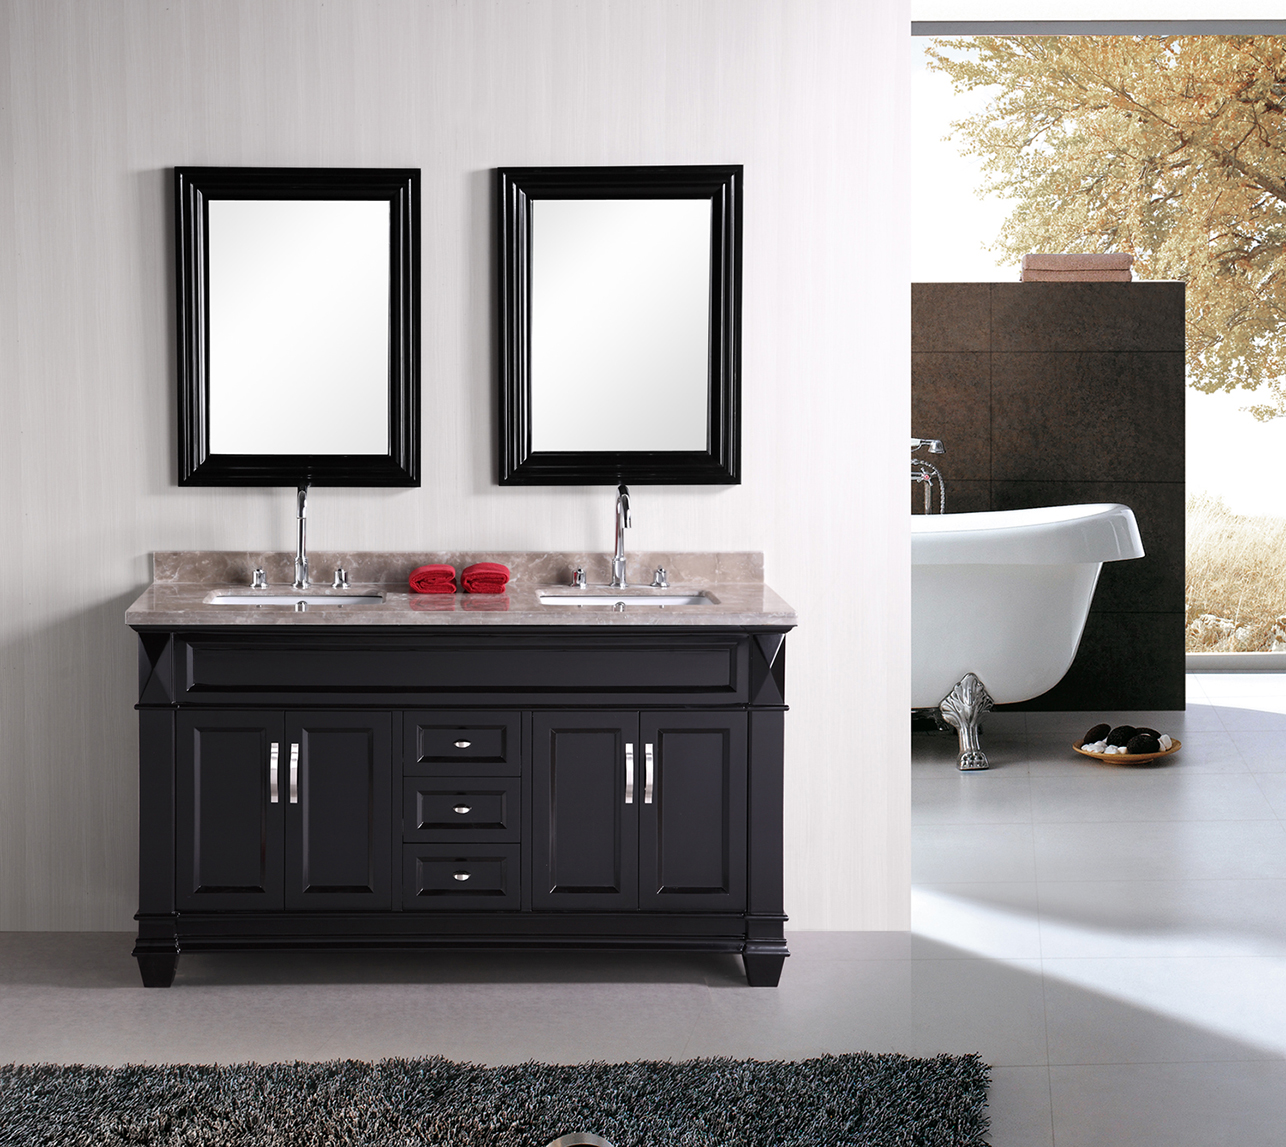 Image of: Best 60 Double Sink Vanity Ideas